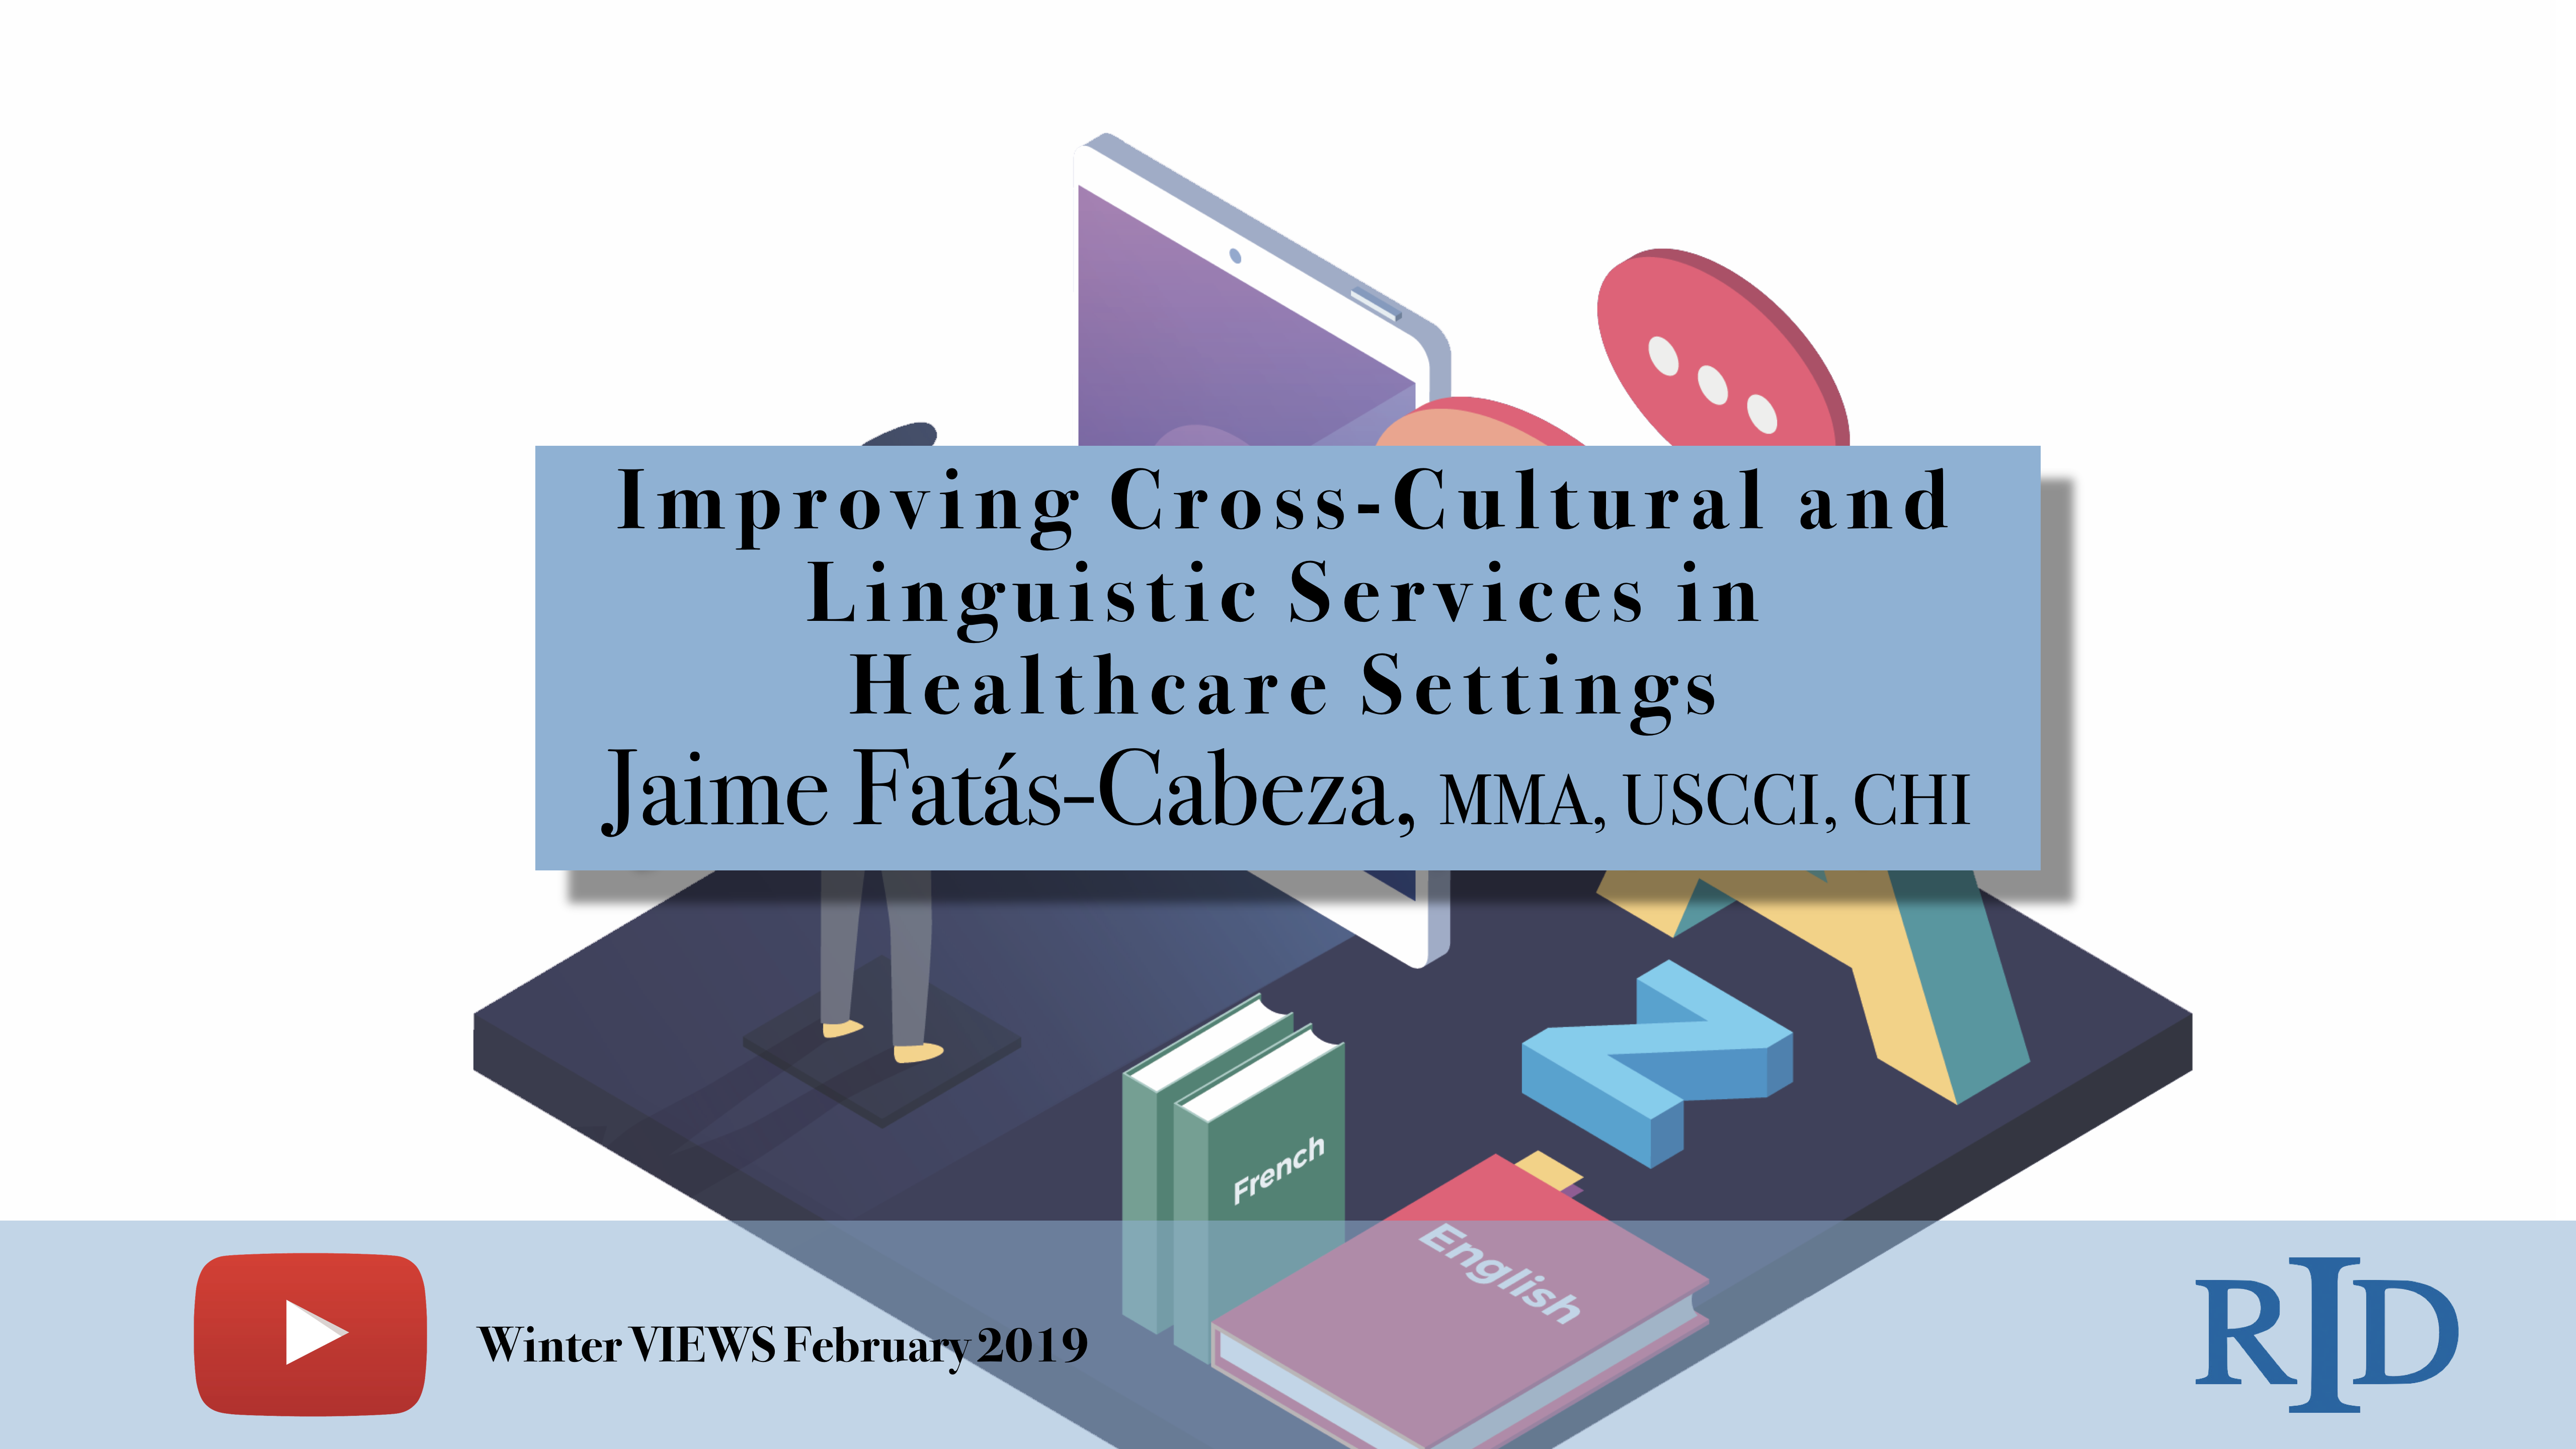 Improving Cross-Cultural and Linguistic Services in Healthcare Settings